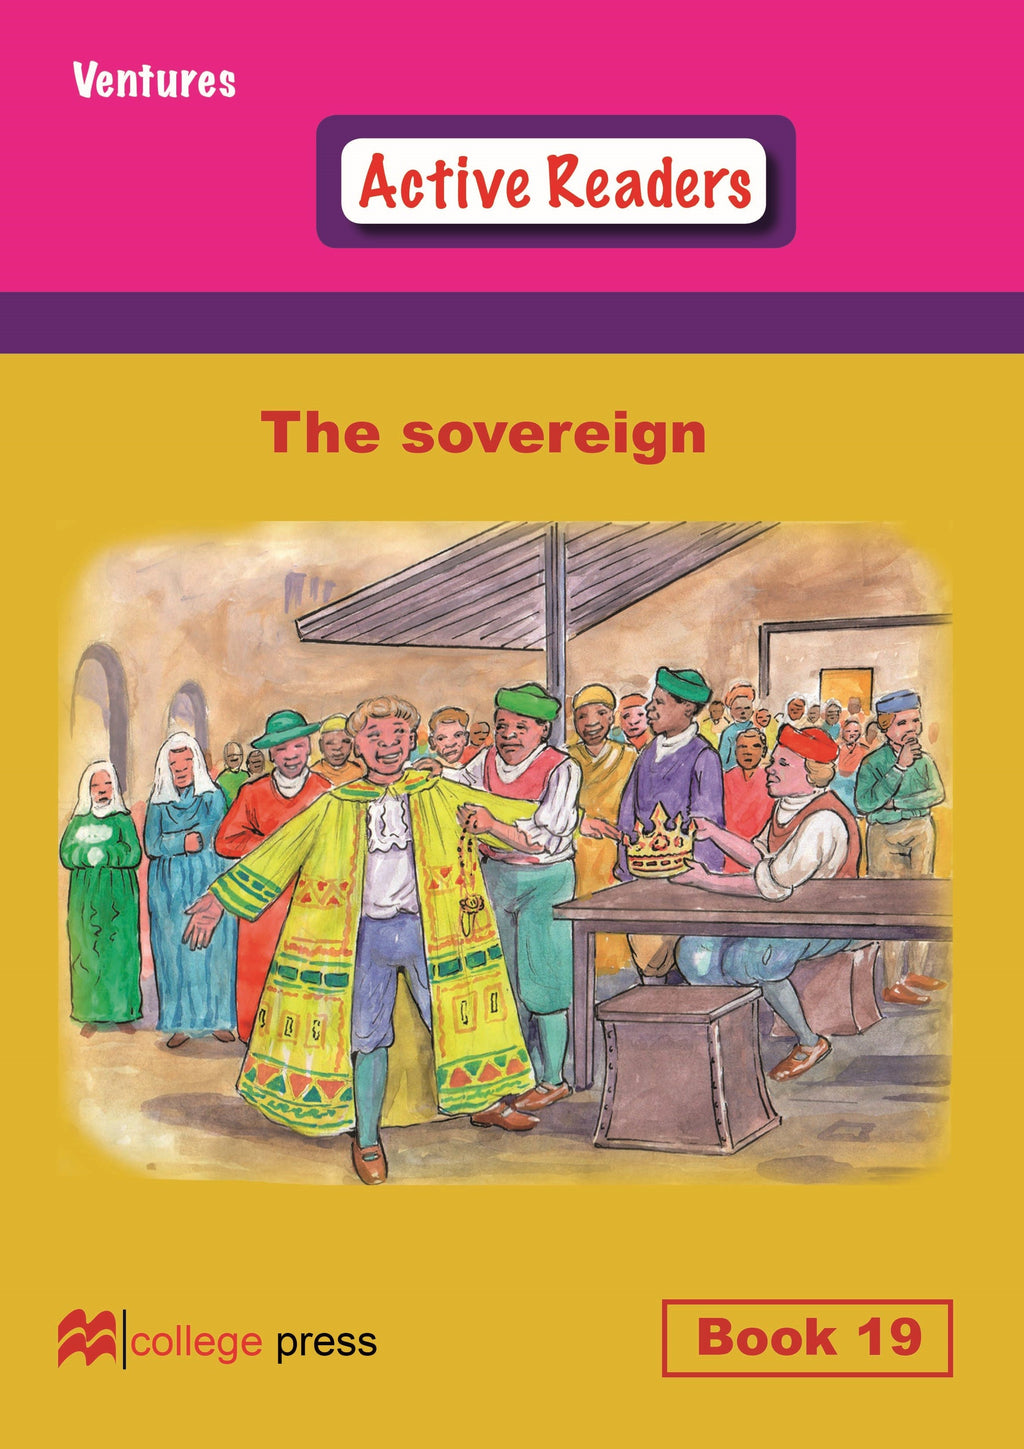 Ventures active readers (Controlled English Reading Scheme) The sovereign Book 19